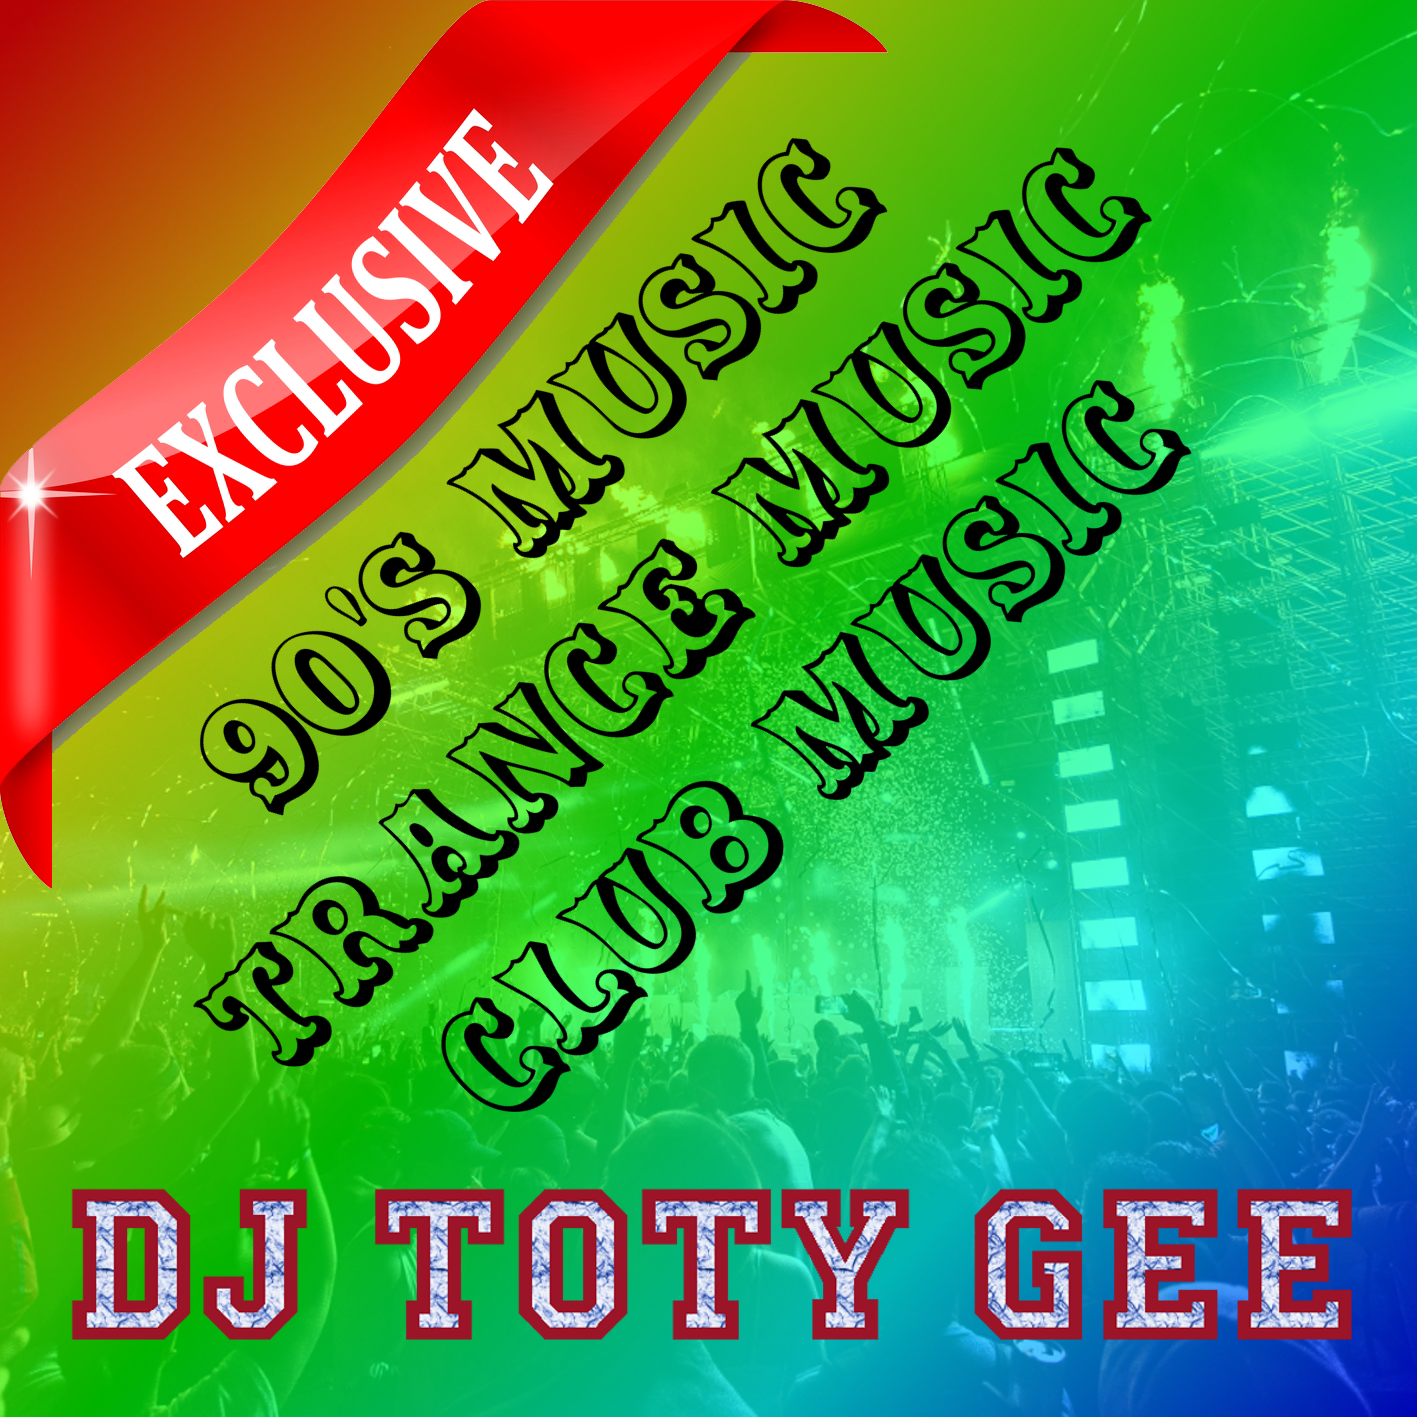 Exclusice DEMO 90's, club and trance music